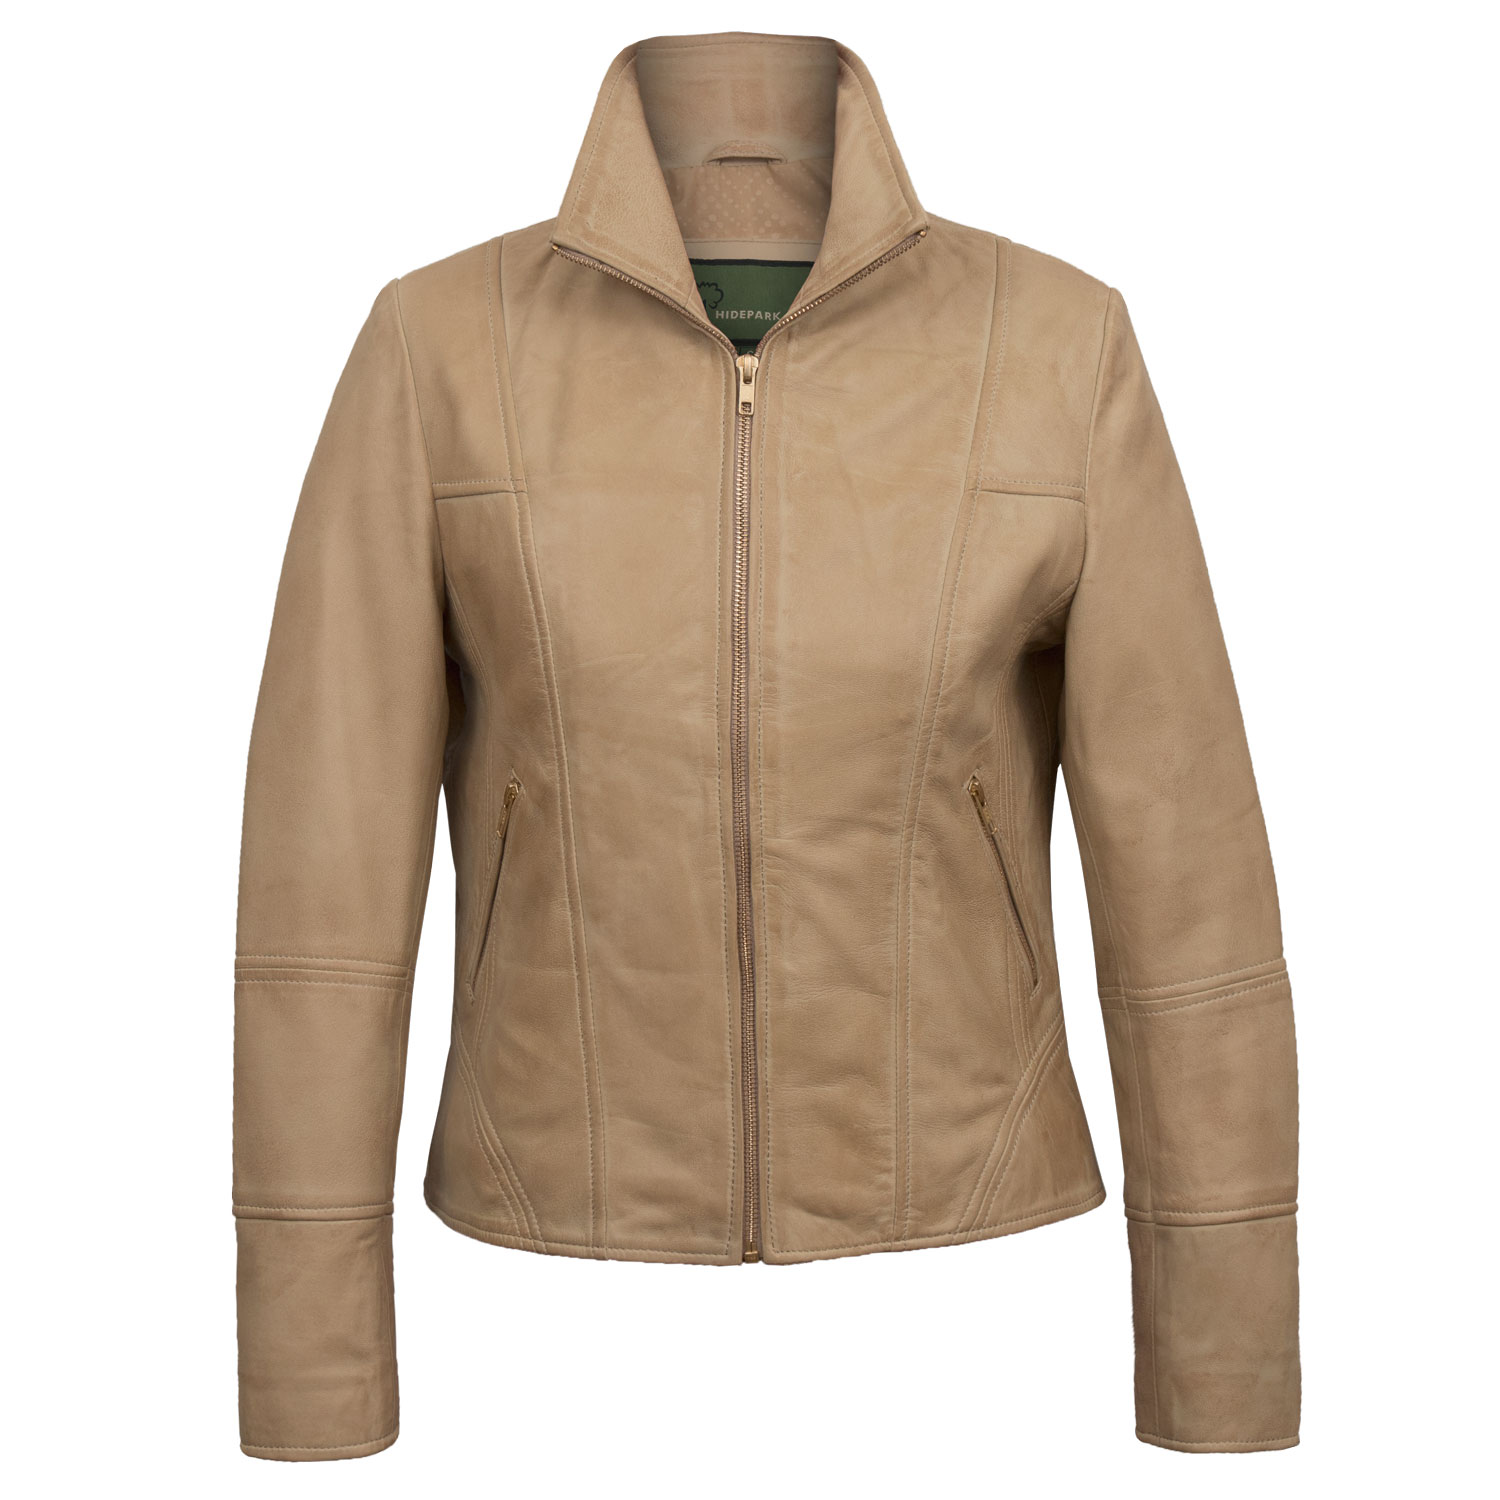 Women's Sand Leather Jacket: Niki